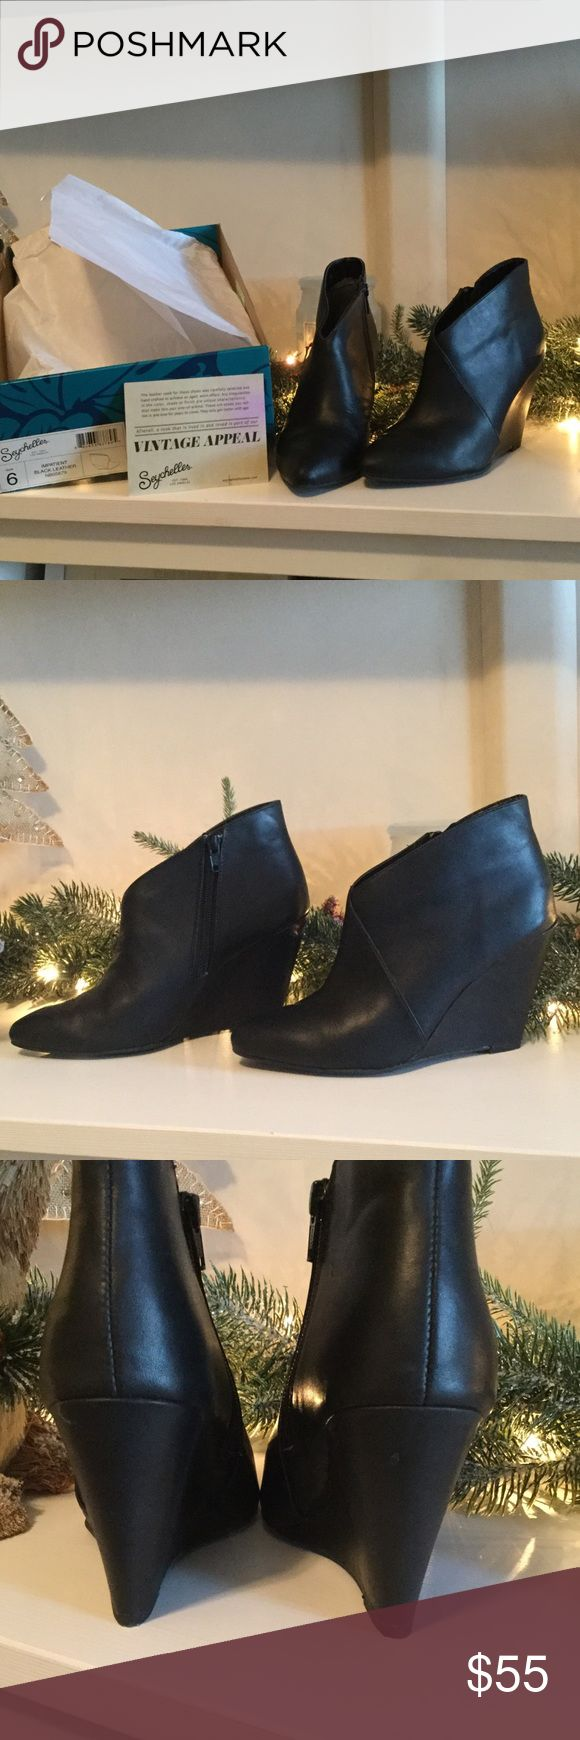 Booties Polish off your look with these sleek and sophisticated impatient booties.  They are perfect with, jeans, leggings, skirts, shorts, and dresses.  The perfect go to bootie!  Booties are in excellent condition, only worn a few times, original packaging included! Seychelles Shoes Ankle Boots & Booties